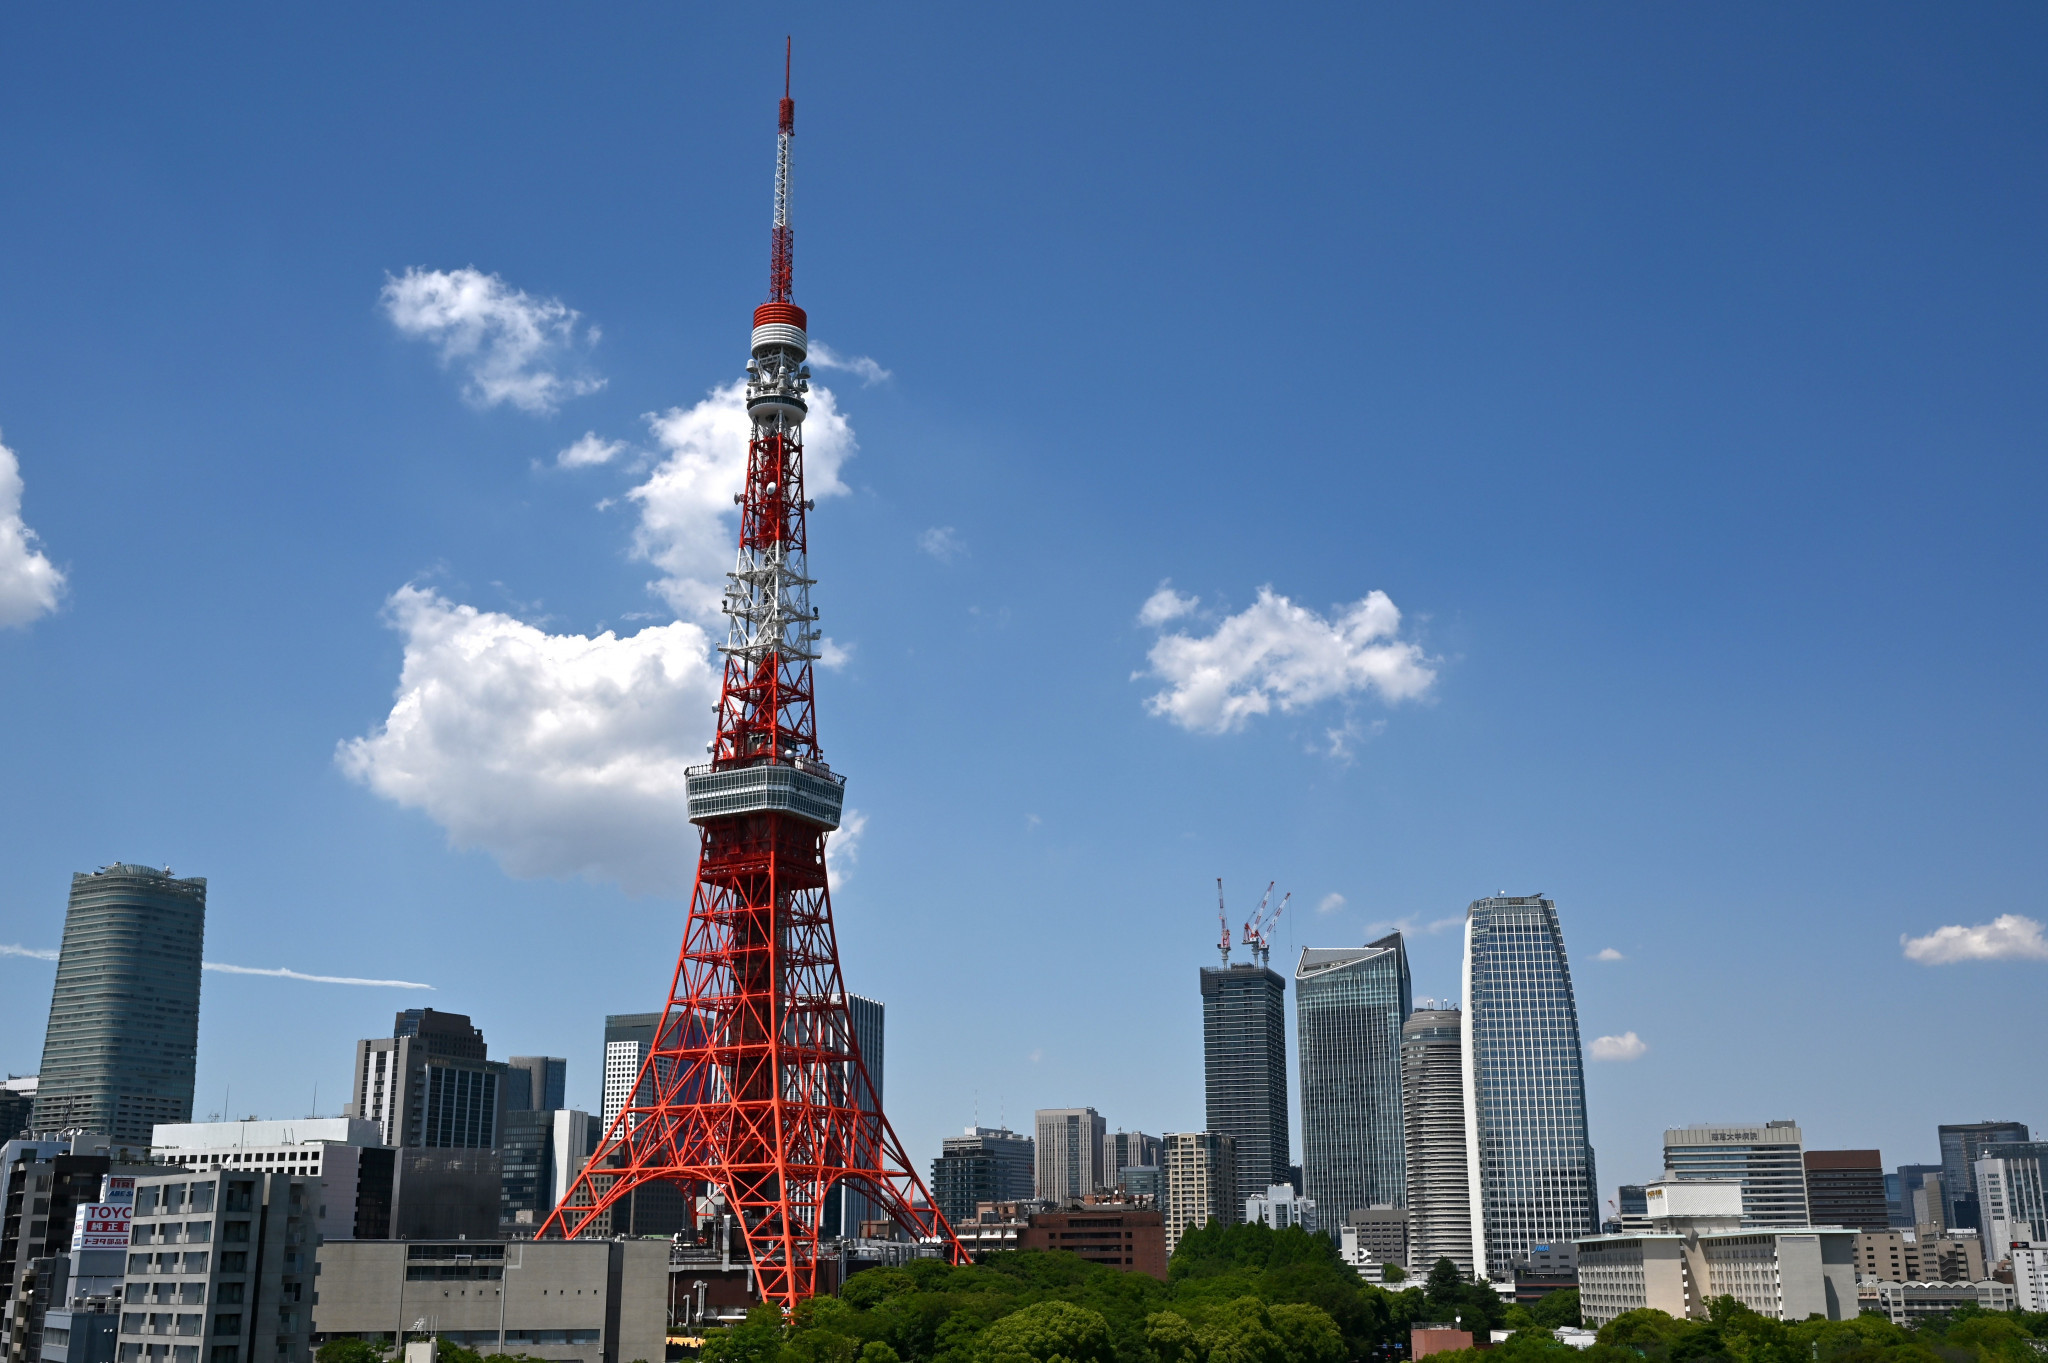 Tokyo Tower open again as restrictive measures in Japan ease